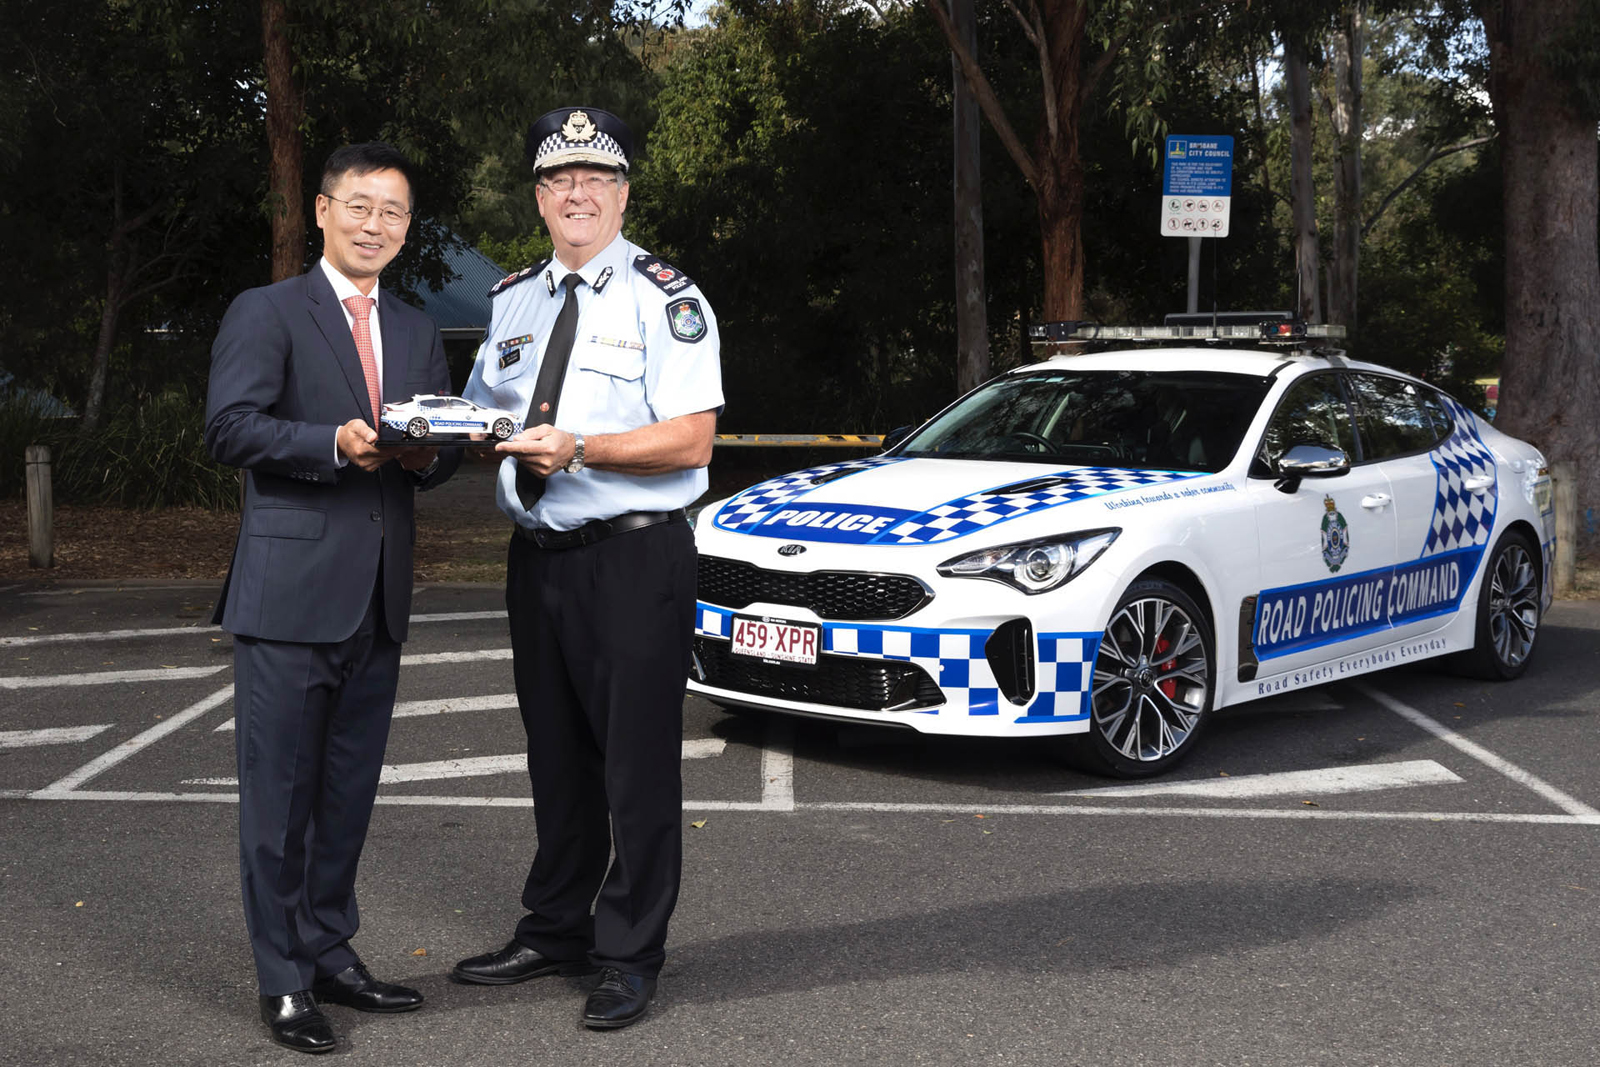 Kia Stinger Police Car Goes Into Service In Australia